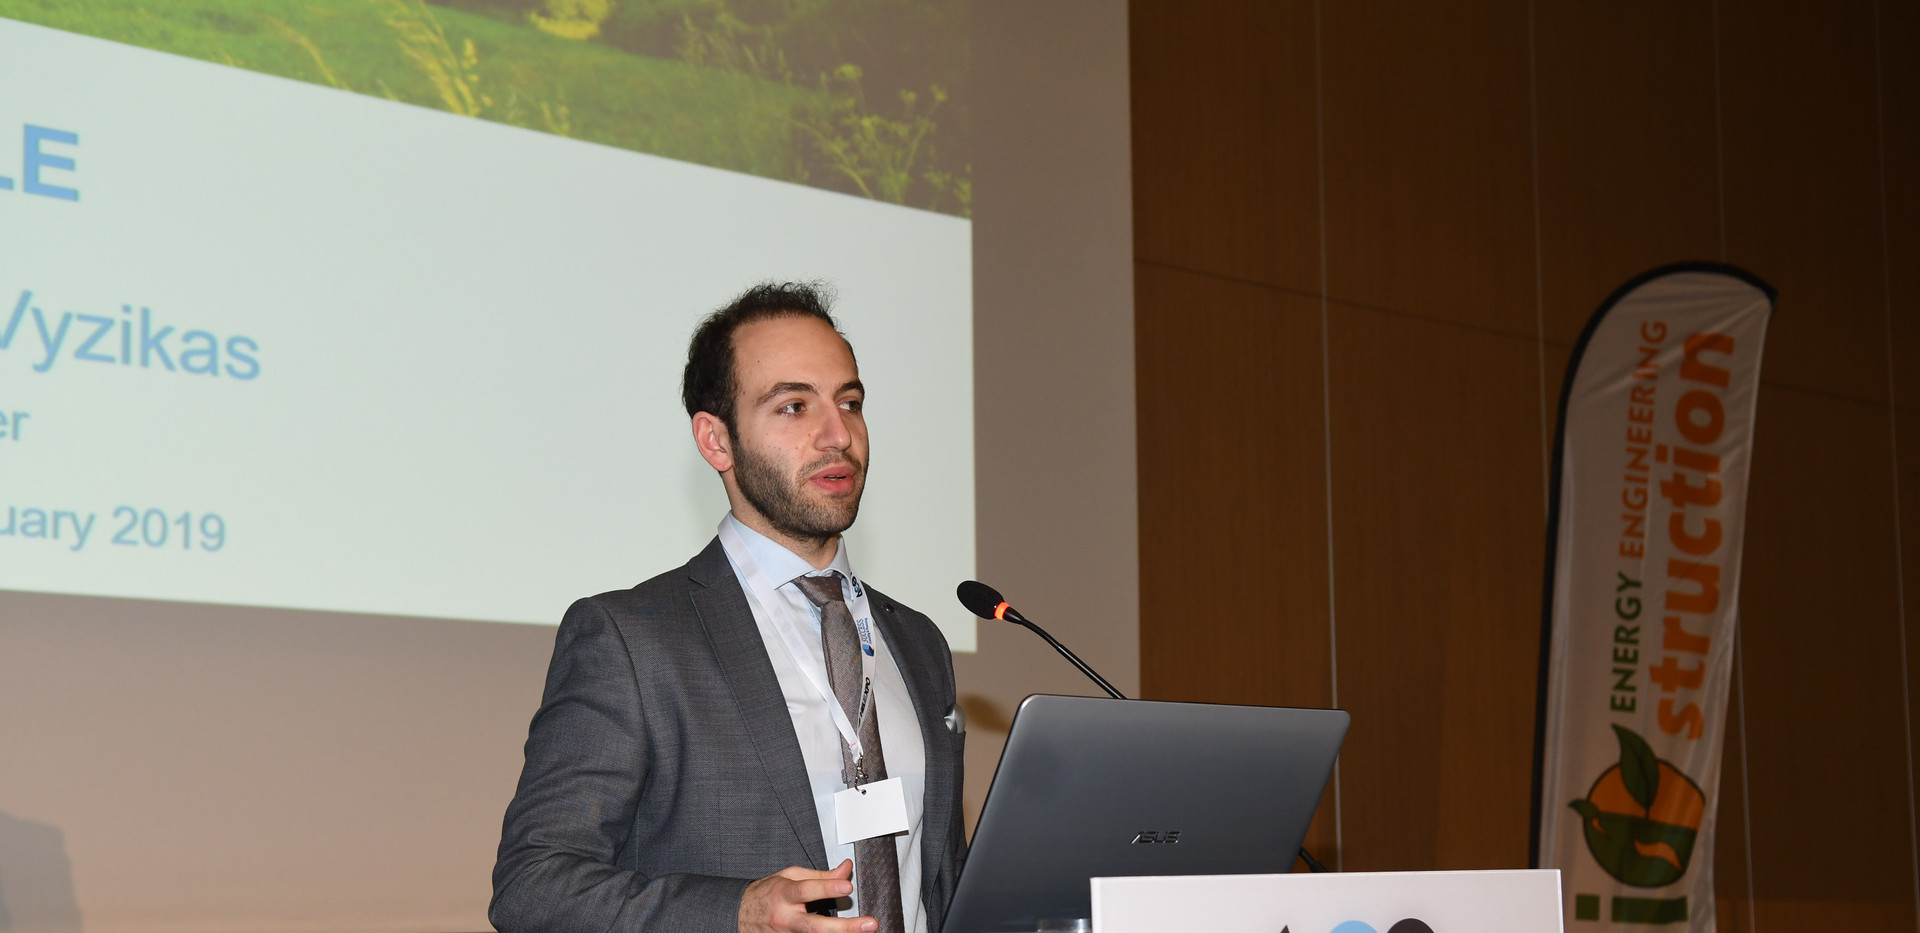 Thomas Vizikas, Representative of Bio-based Industries (BBI)